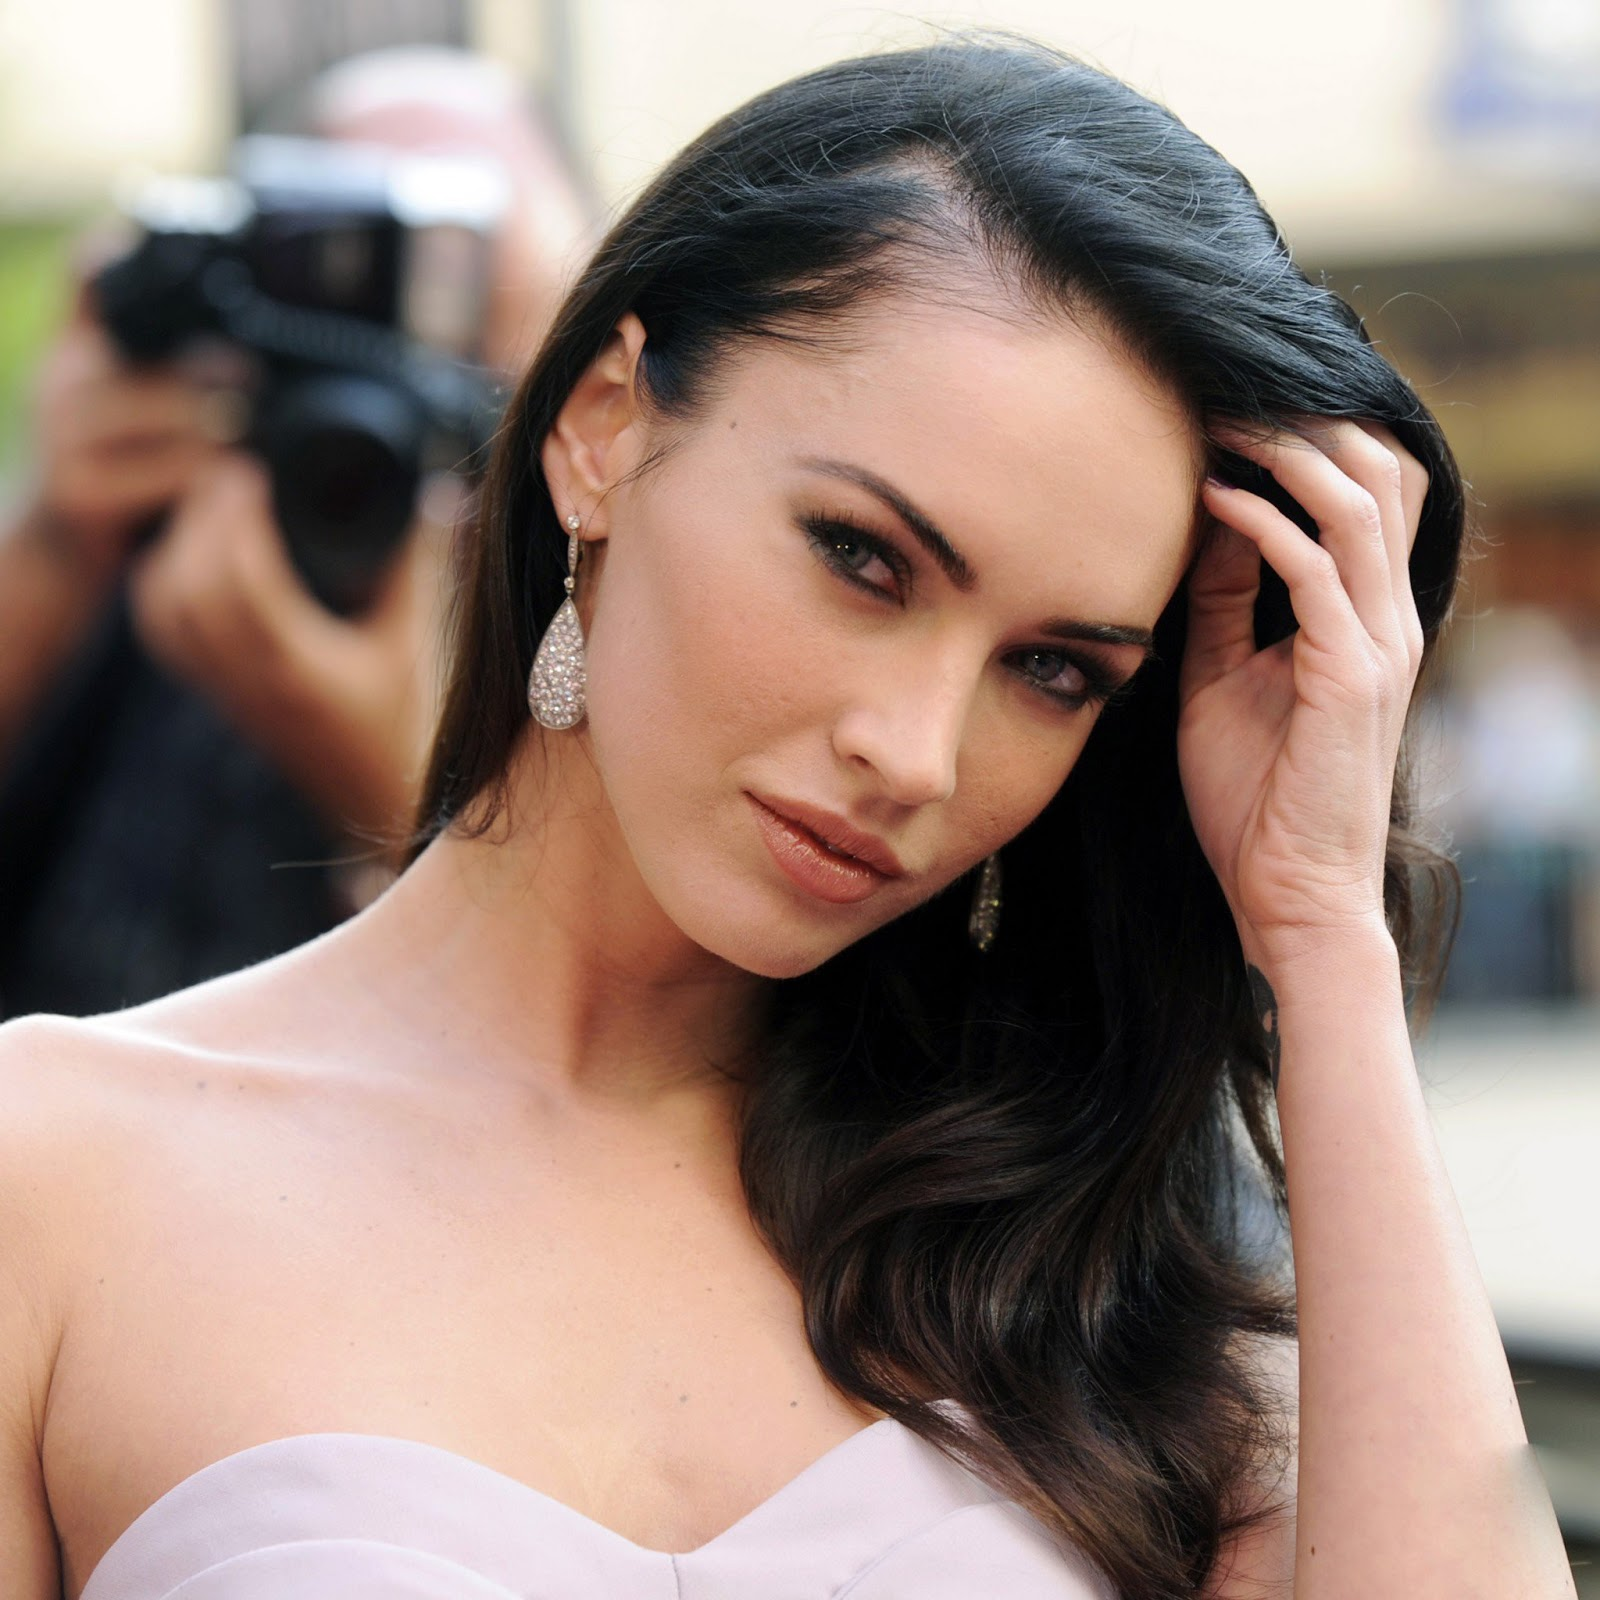 http://2.bp.blogspot.com/-qR2-KLuWJKo/UOV-3x79haI/AAAAAAAADCI/ZiKDWpRrlvY/s1600/beautiful+megan+fox+wallpaper.jpg